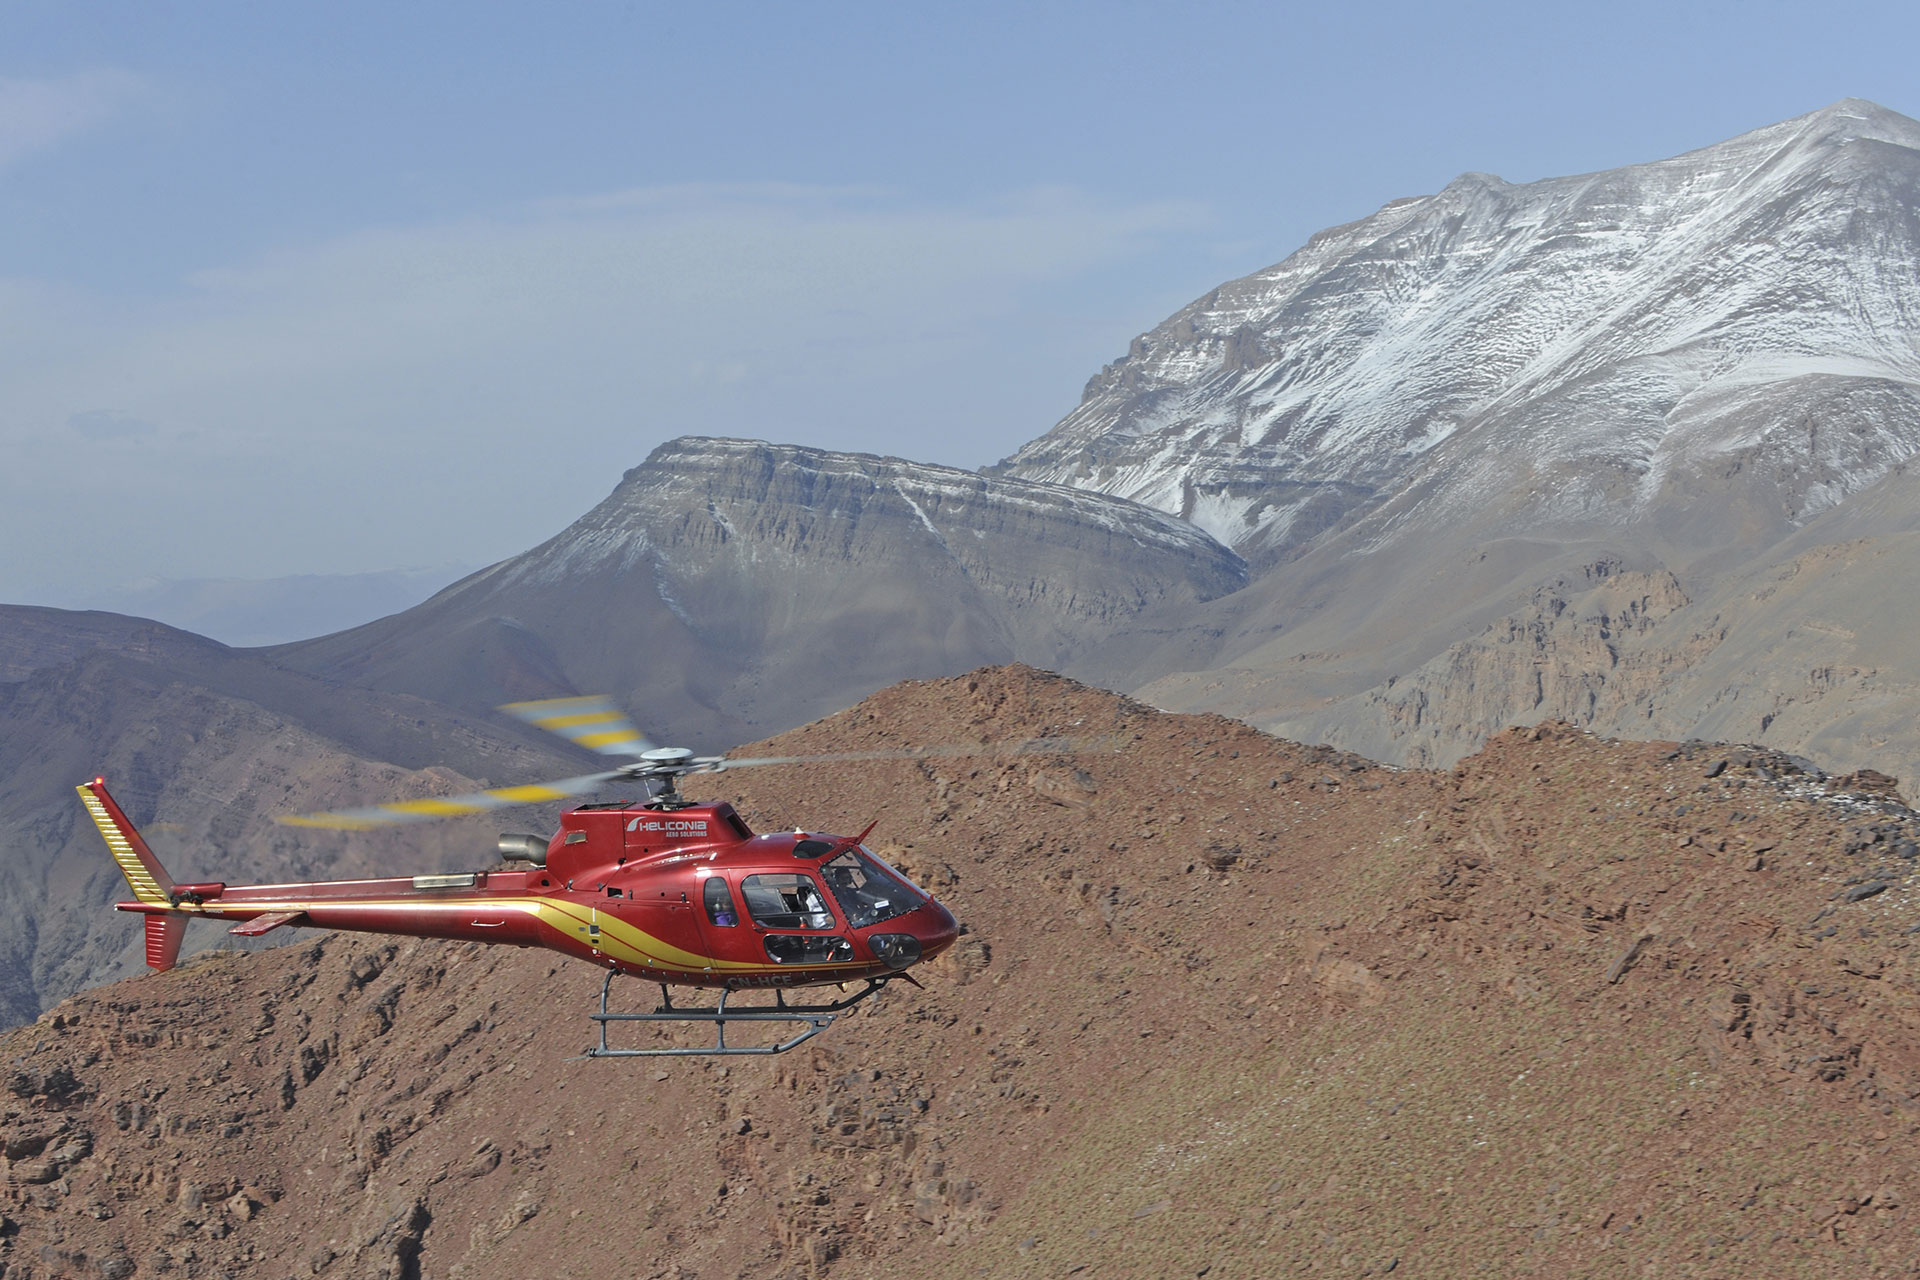 heliconia-helicopter-maroc-h1